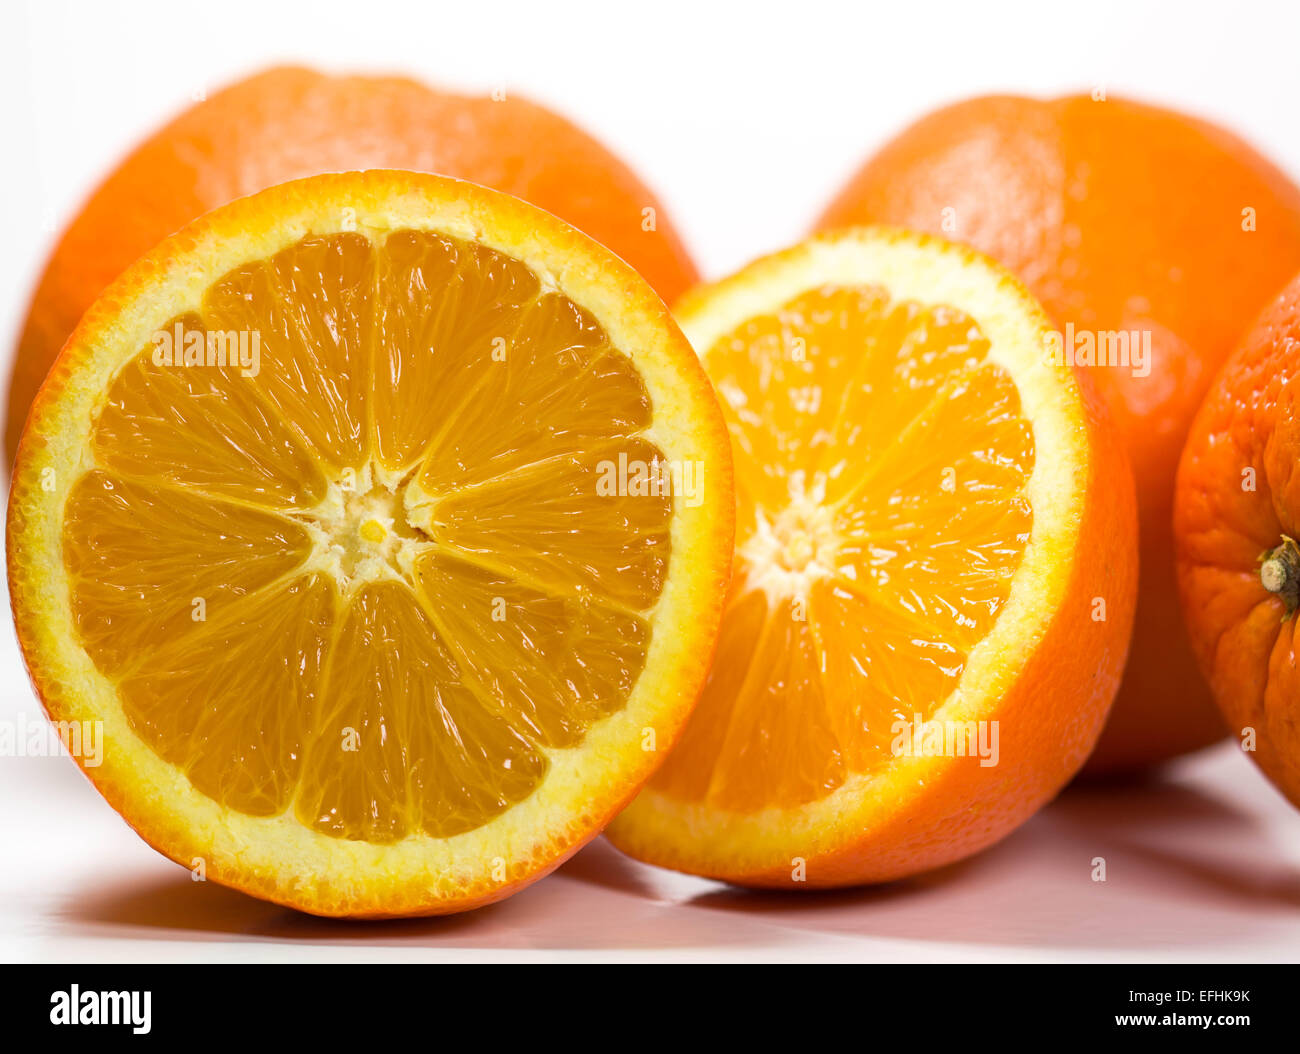 Oranges isolated on a white background. - Stock Image